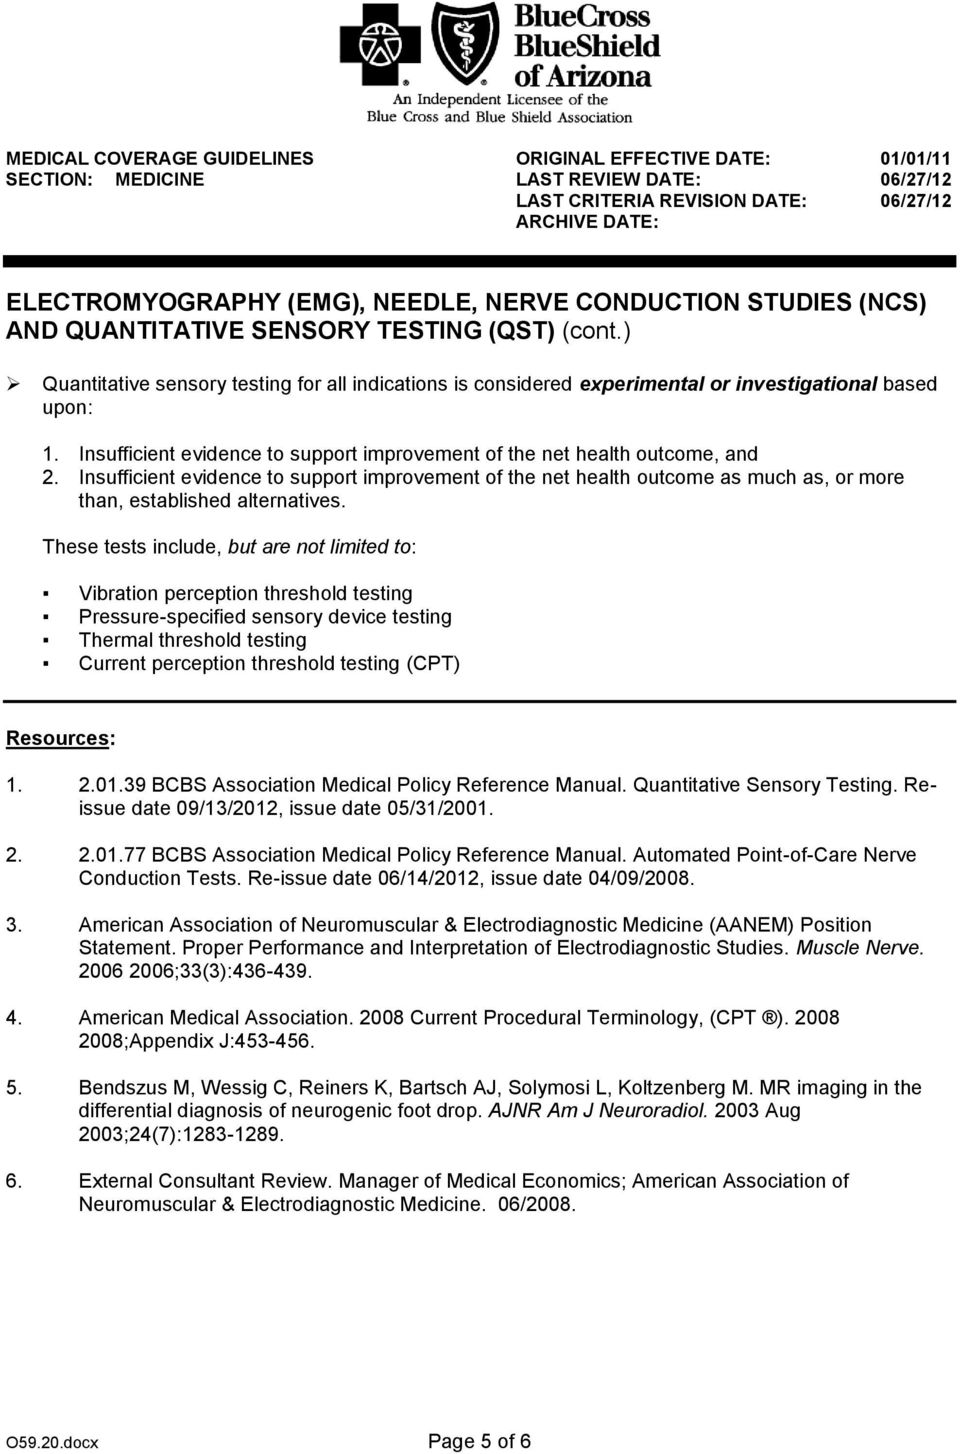 Quantitative Sensory Testing. Reissue date 09/13/2012, issue date 05/31/2001. 2. 2.01.77 BCBS Association Medical Policy Reference Manual. Automated Point-of-Care Nerve Conduction Tests.